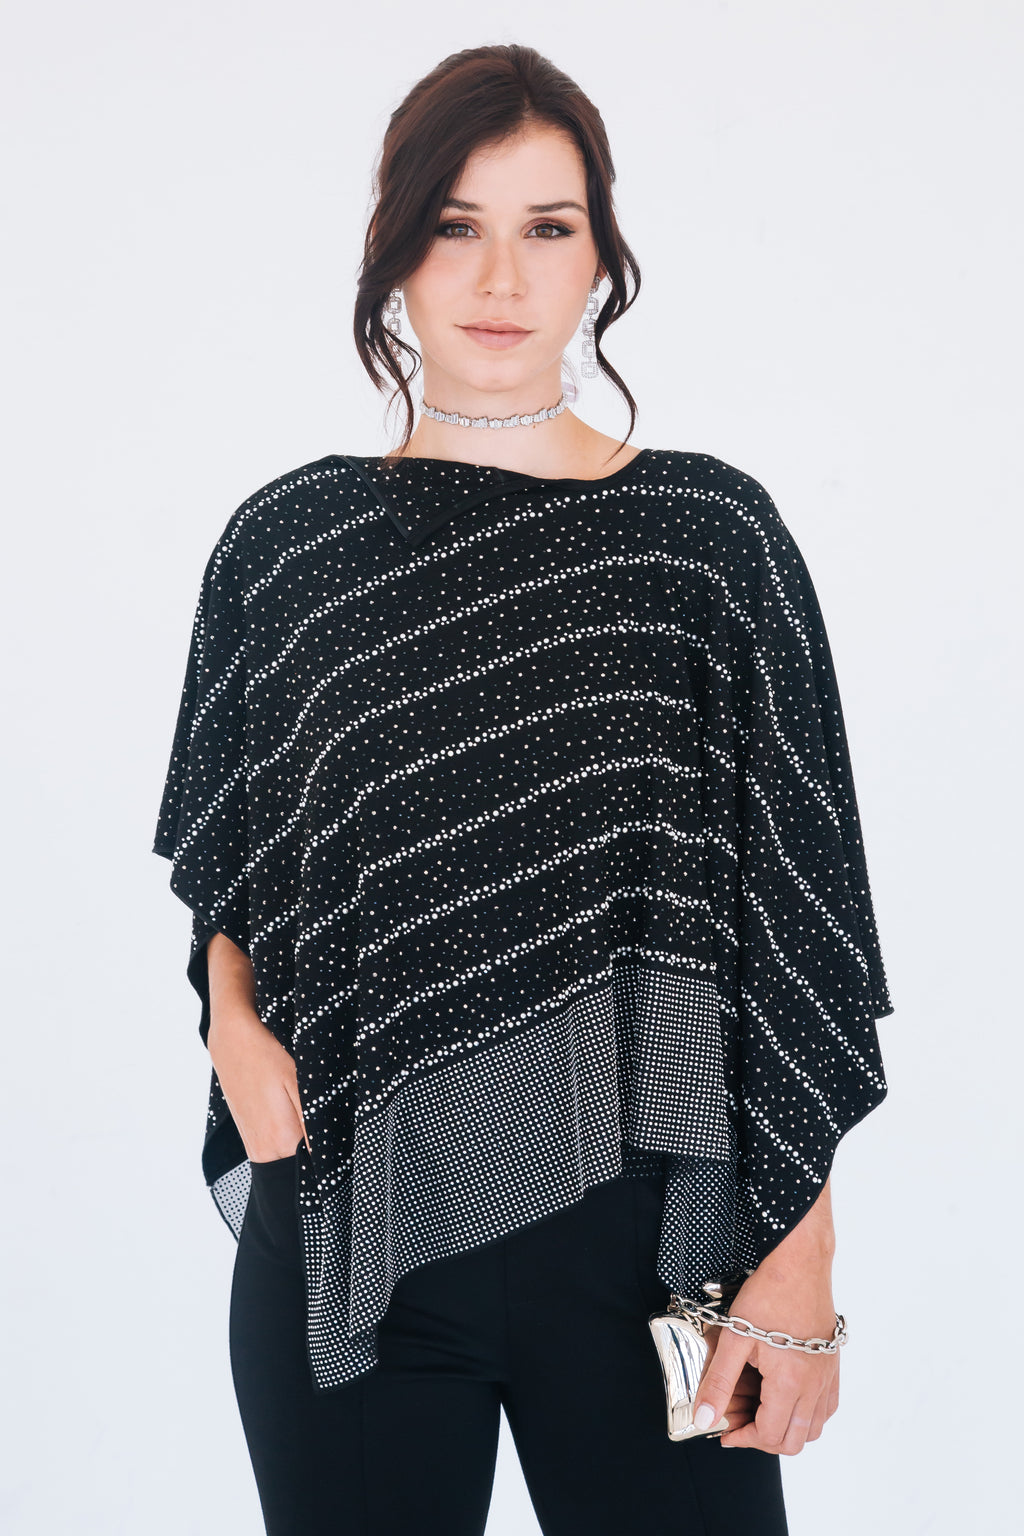 Crystal Pearl Zip Poncho - W6480301